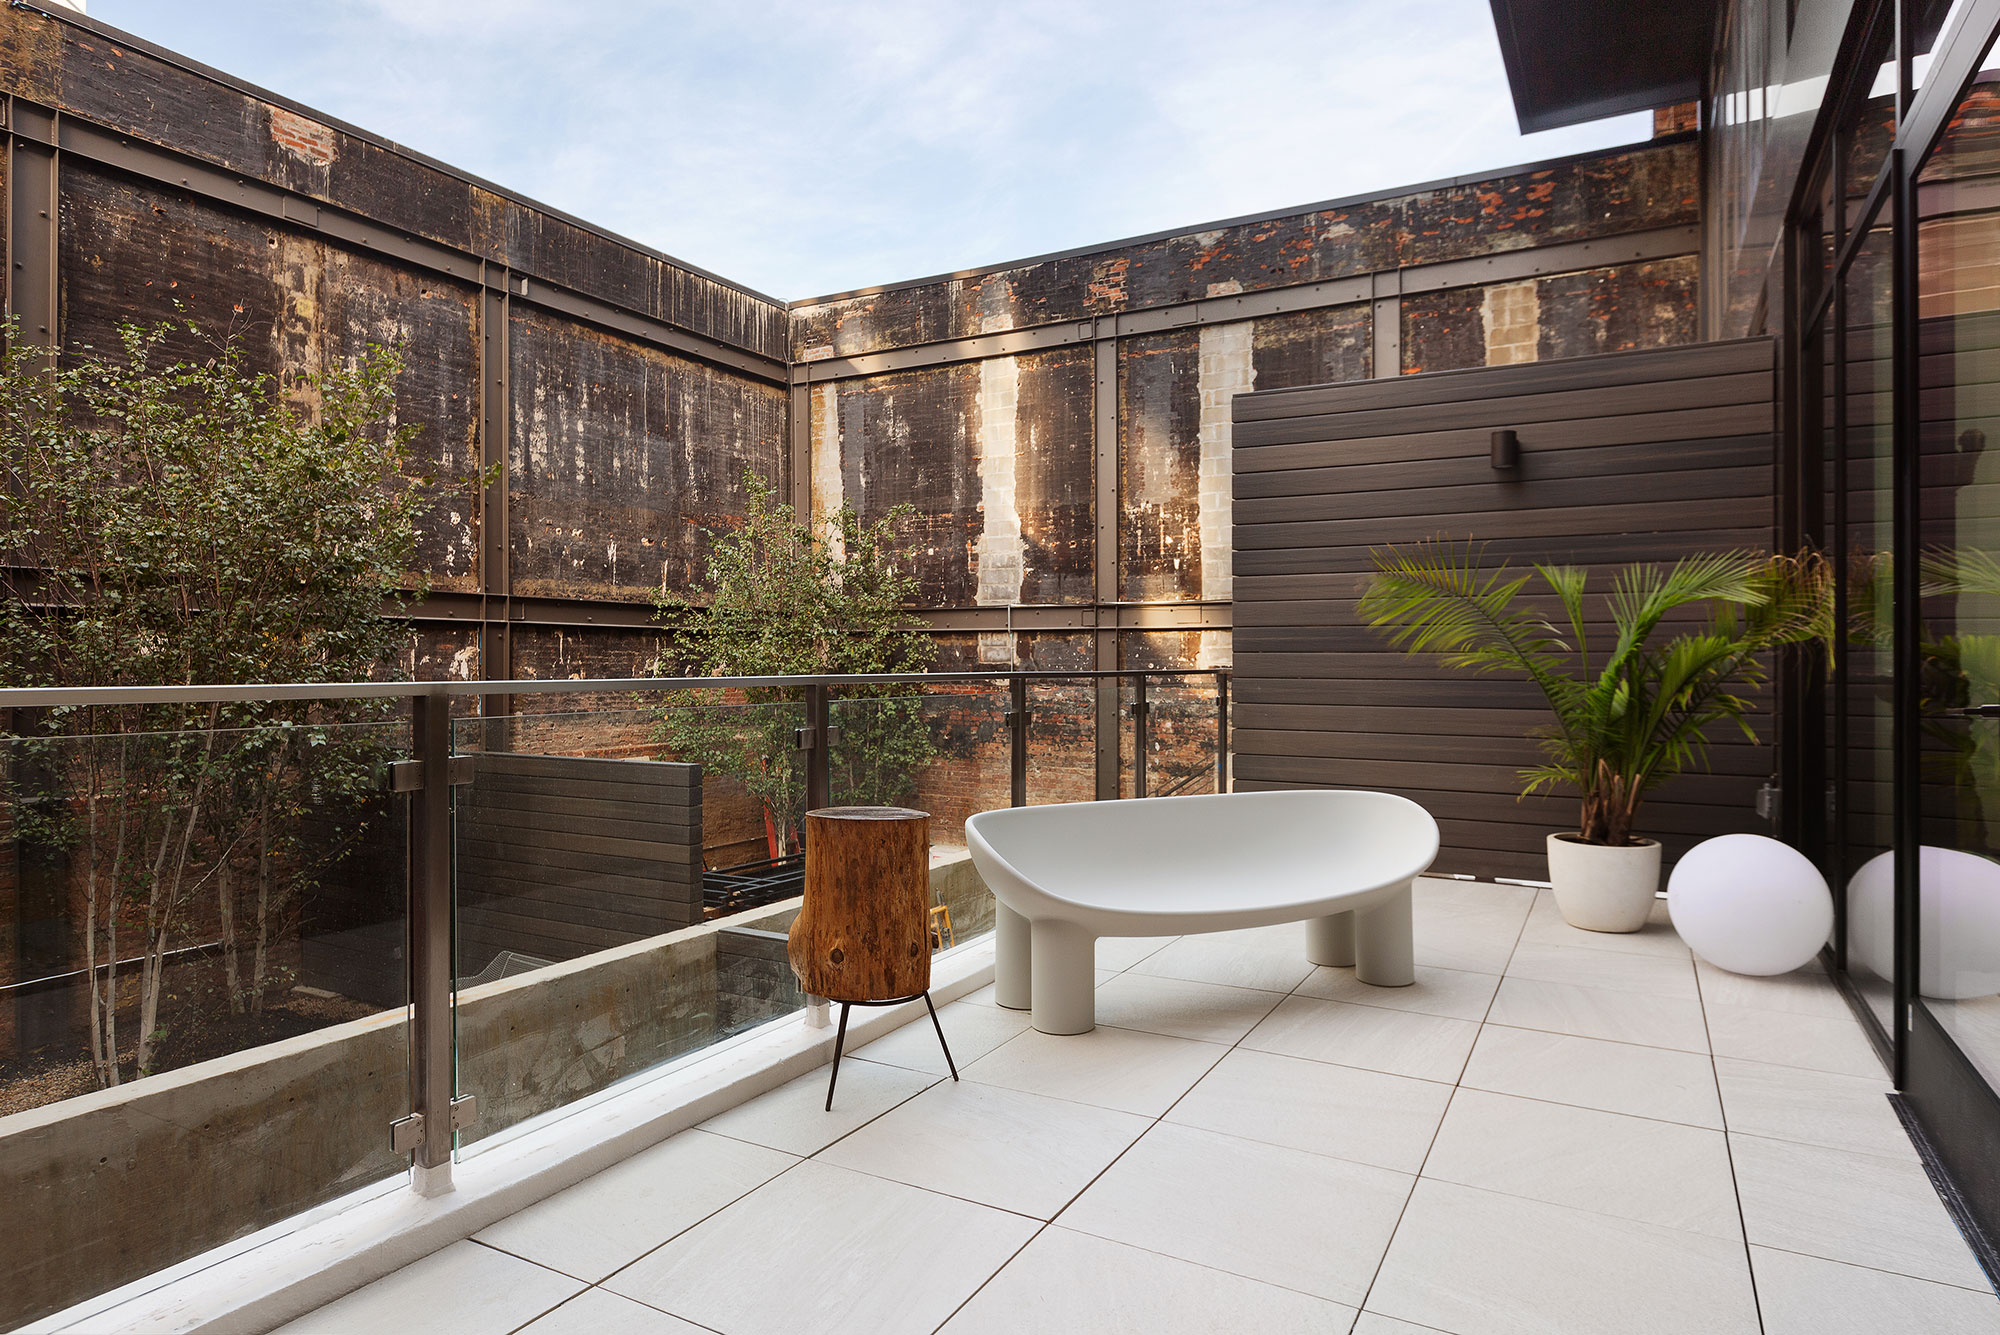 Outdoor Space Design with Preserved Original 1903 Walls The Bath Haus Interior Design by Meshberg Group